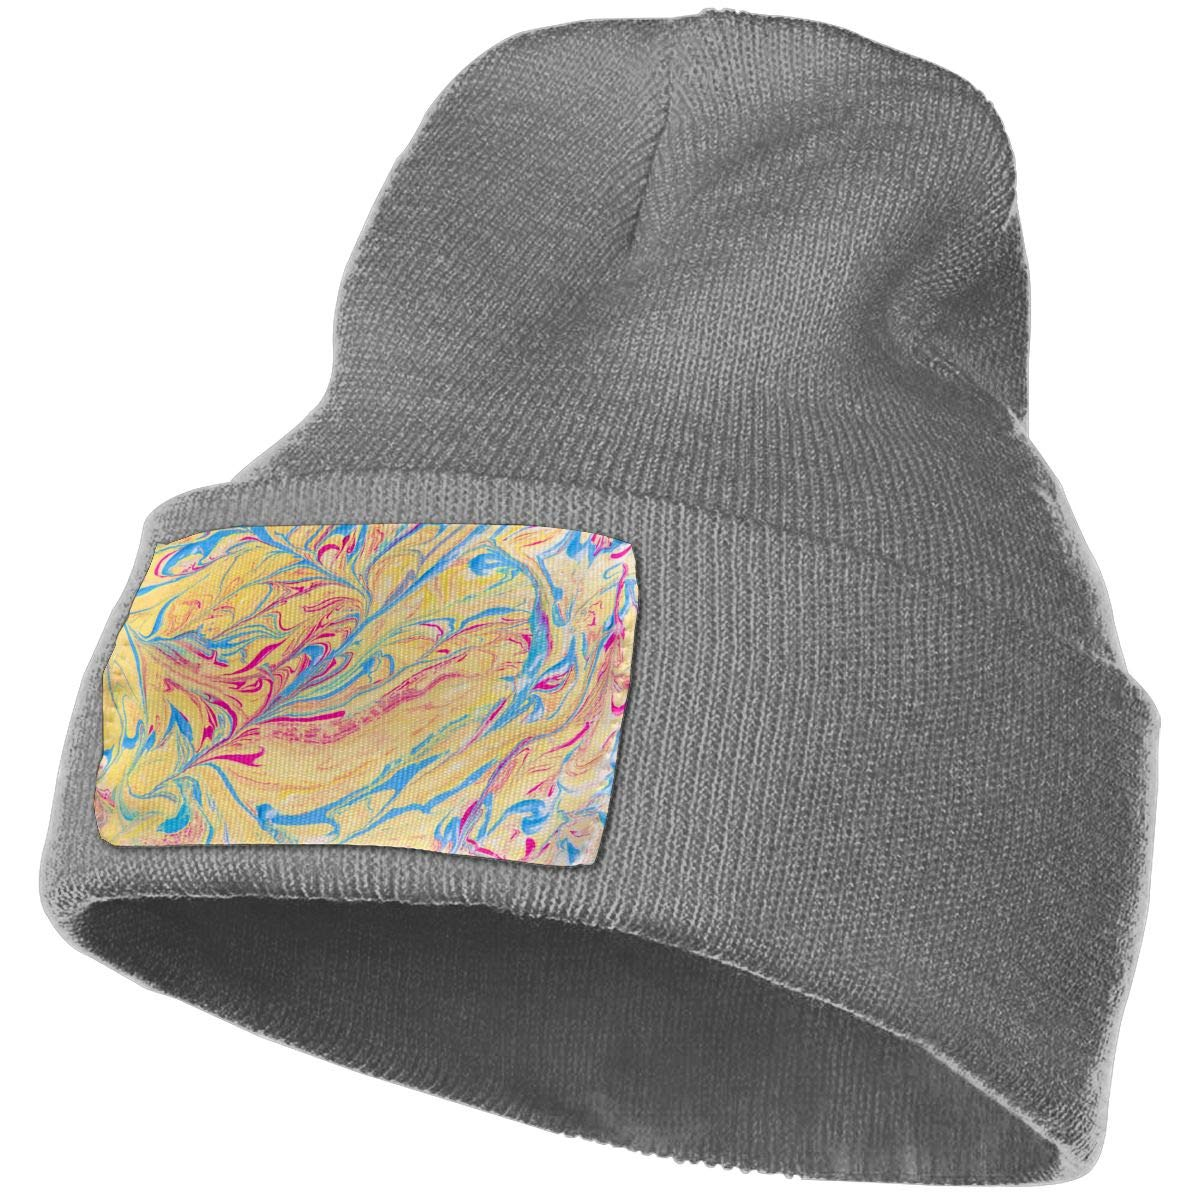 PCaag7v Abstract Yellow and Blue Colored Texture Beanie Hat Winter Solid Warm Knit Unisex Ski Skull Cap